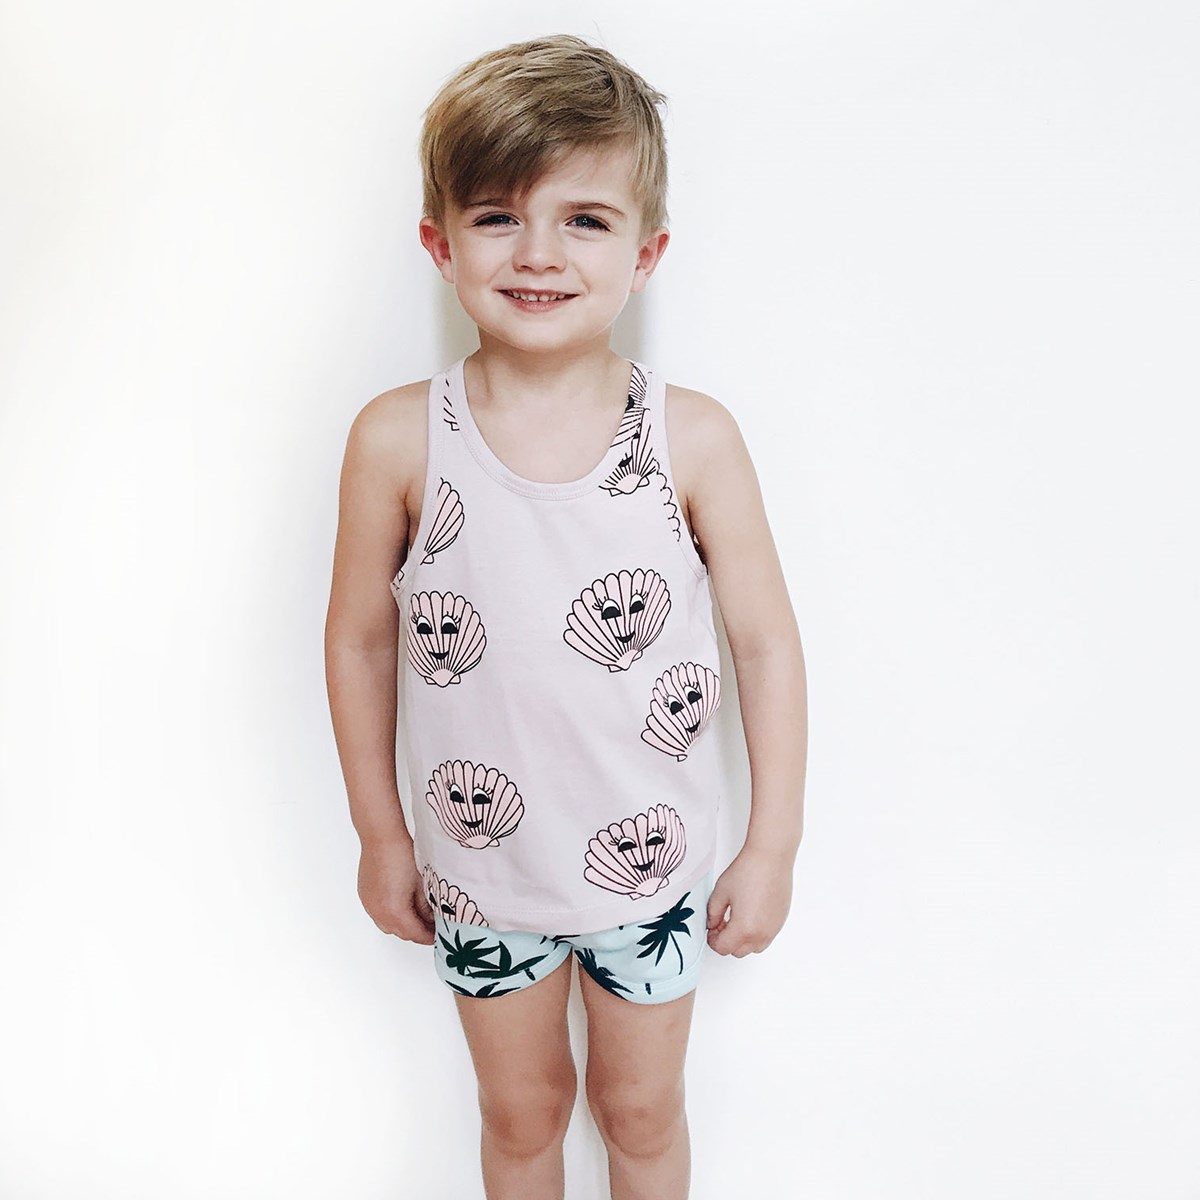 e18cd97f72f8ad Hugo Loves Tiki - Tank Top Pink Seashells - Babyshop.com